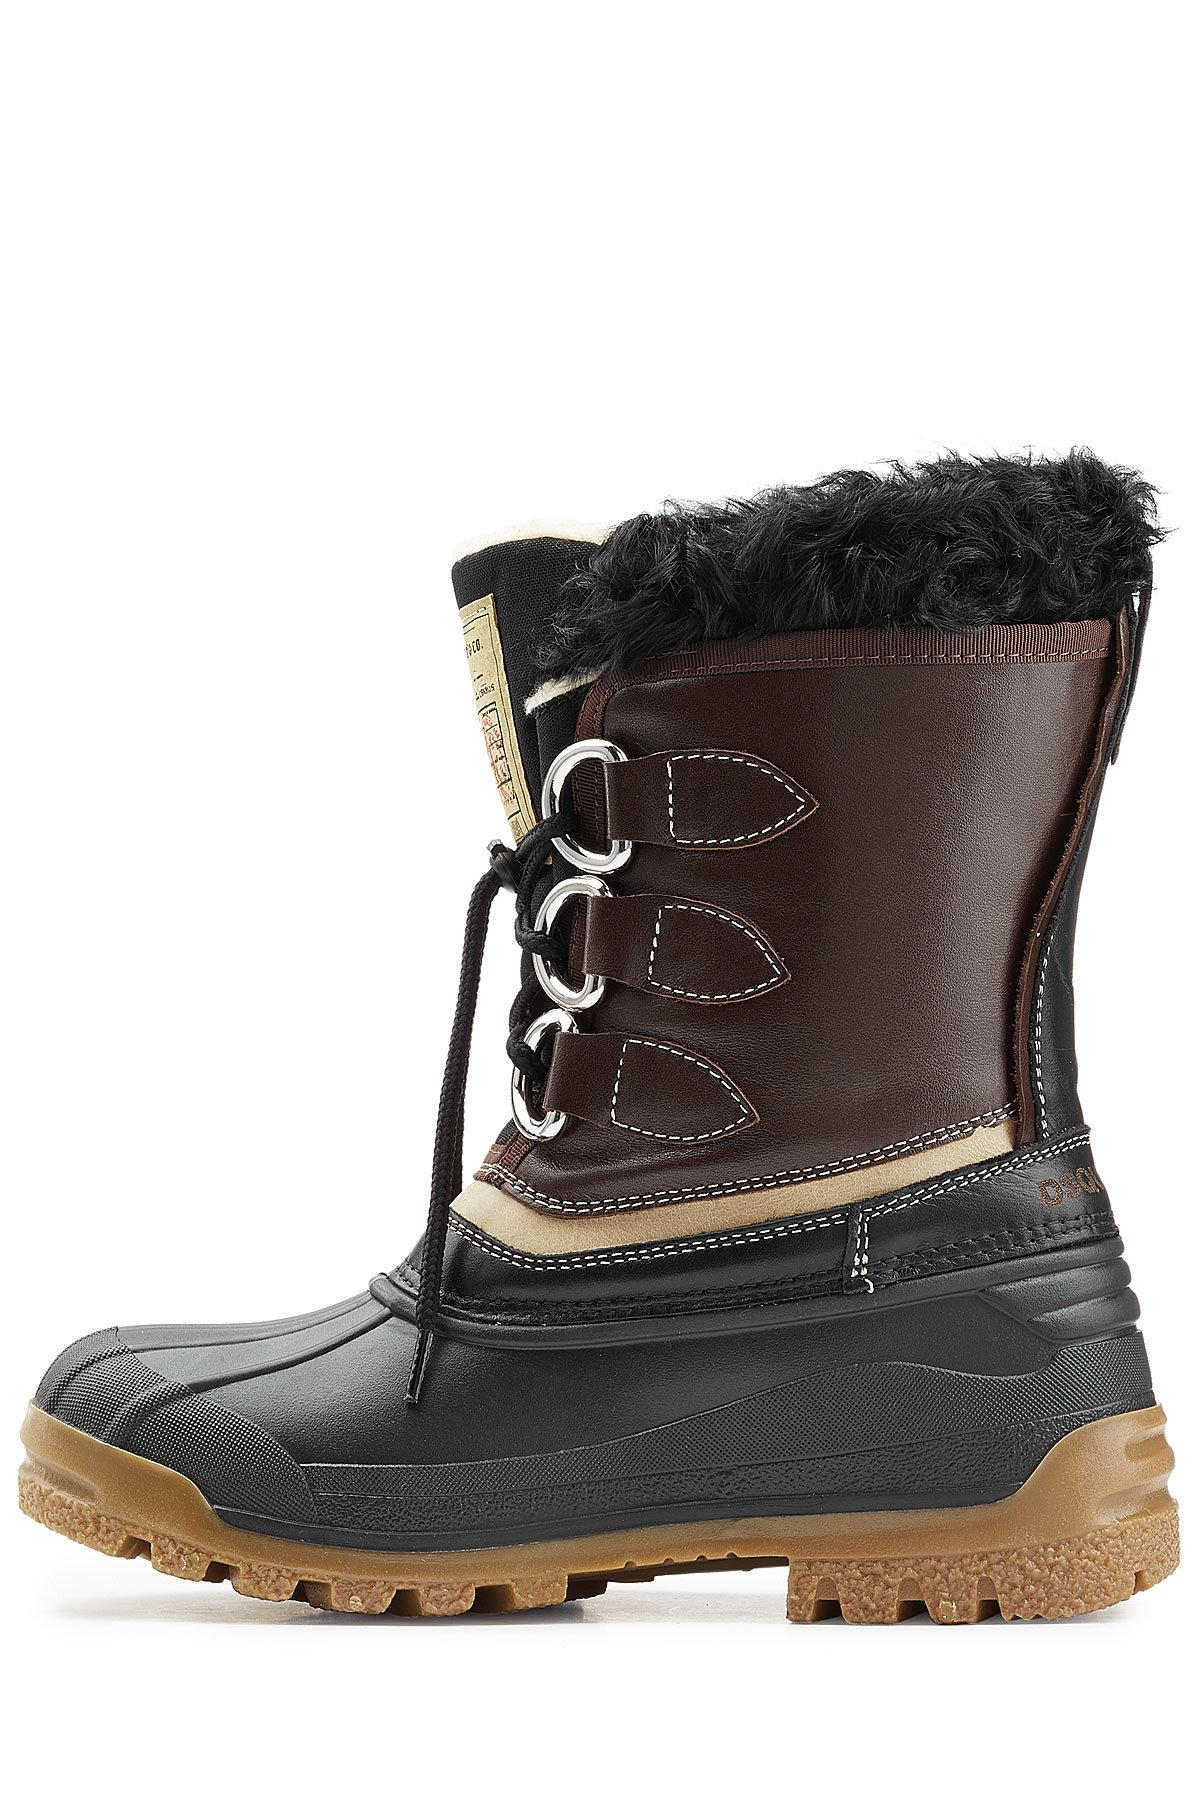 dsquared 178 rubber boots with leather and shearling in black